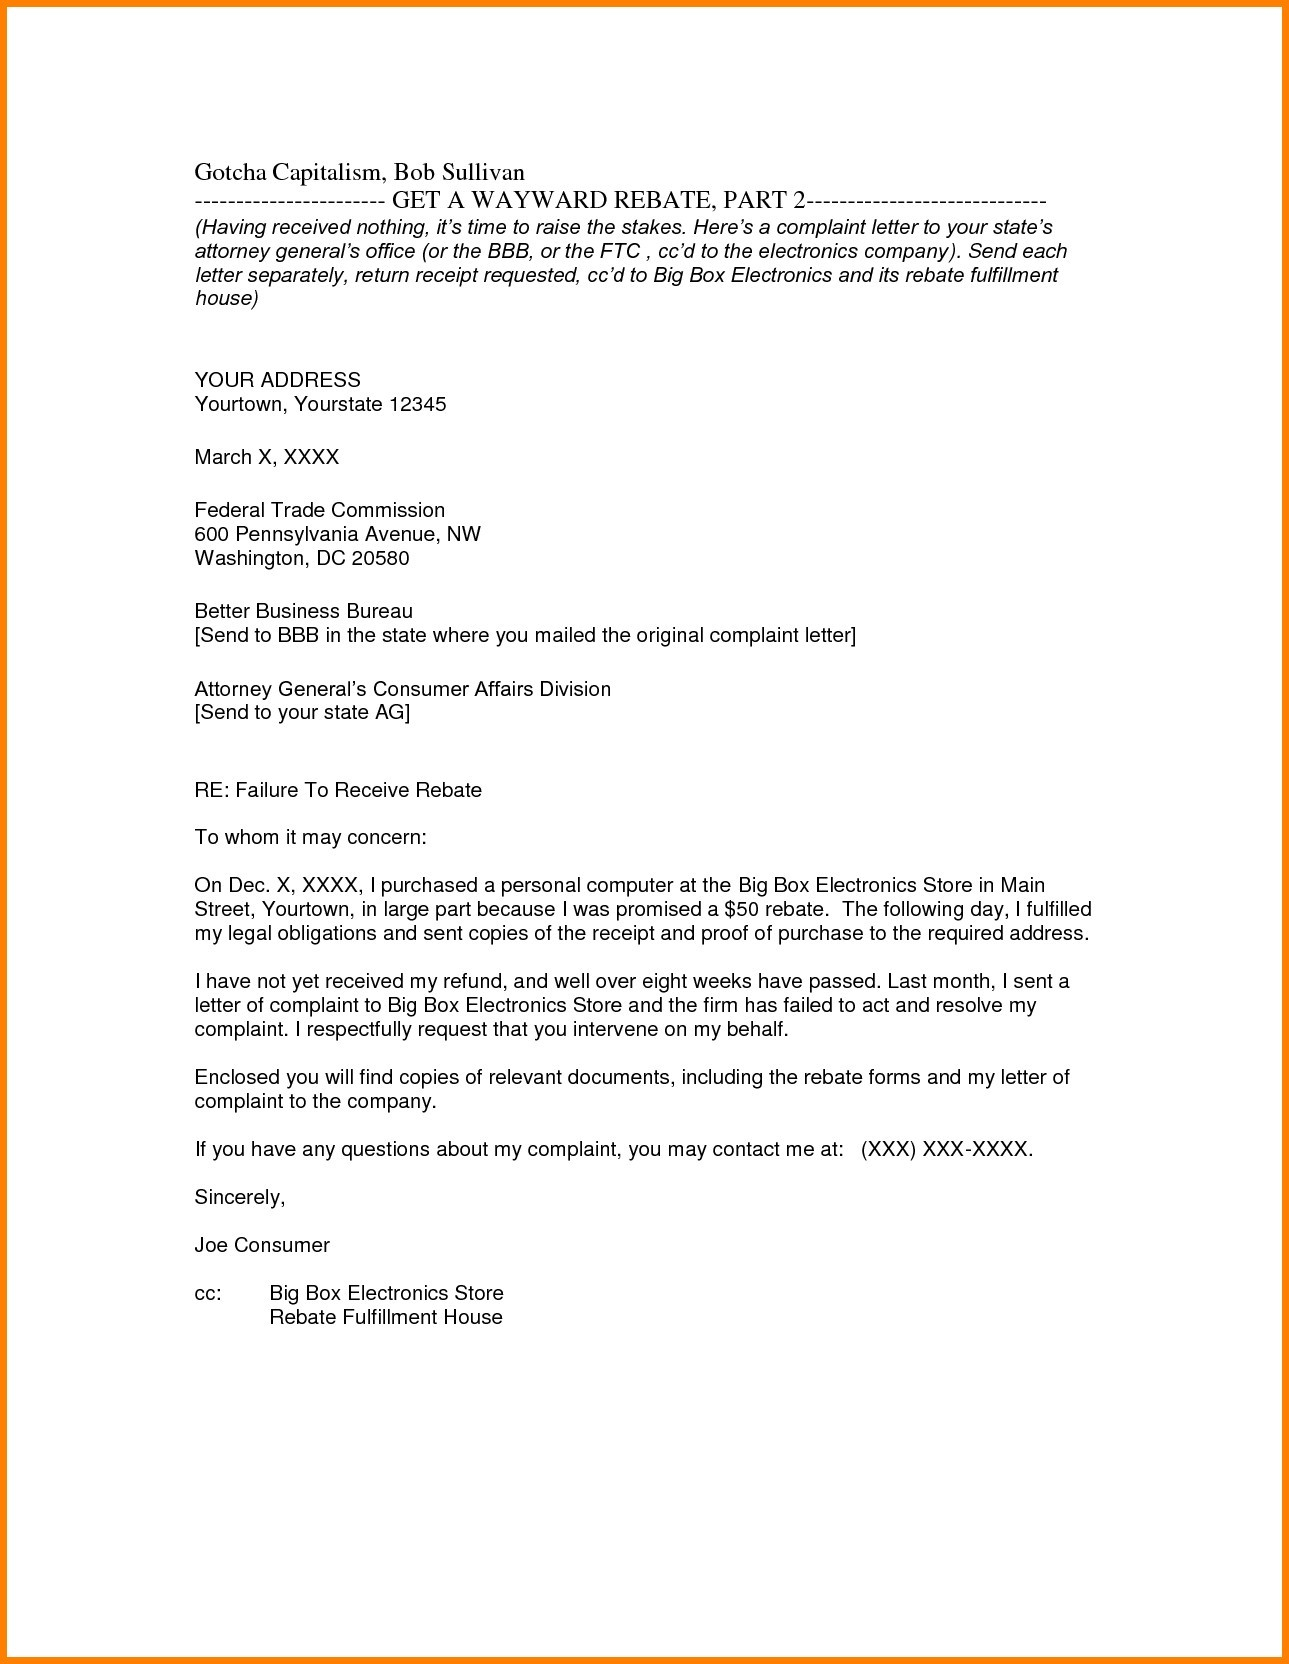 Flight Delay Compensation Letter Template - Plaint Letter Template Refund Fresh Luggage Claim Letter Example